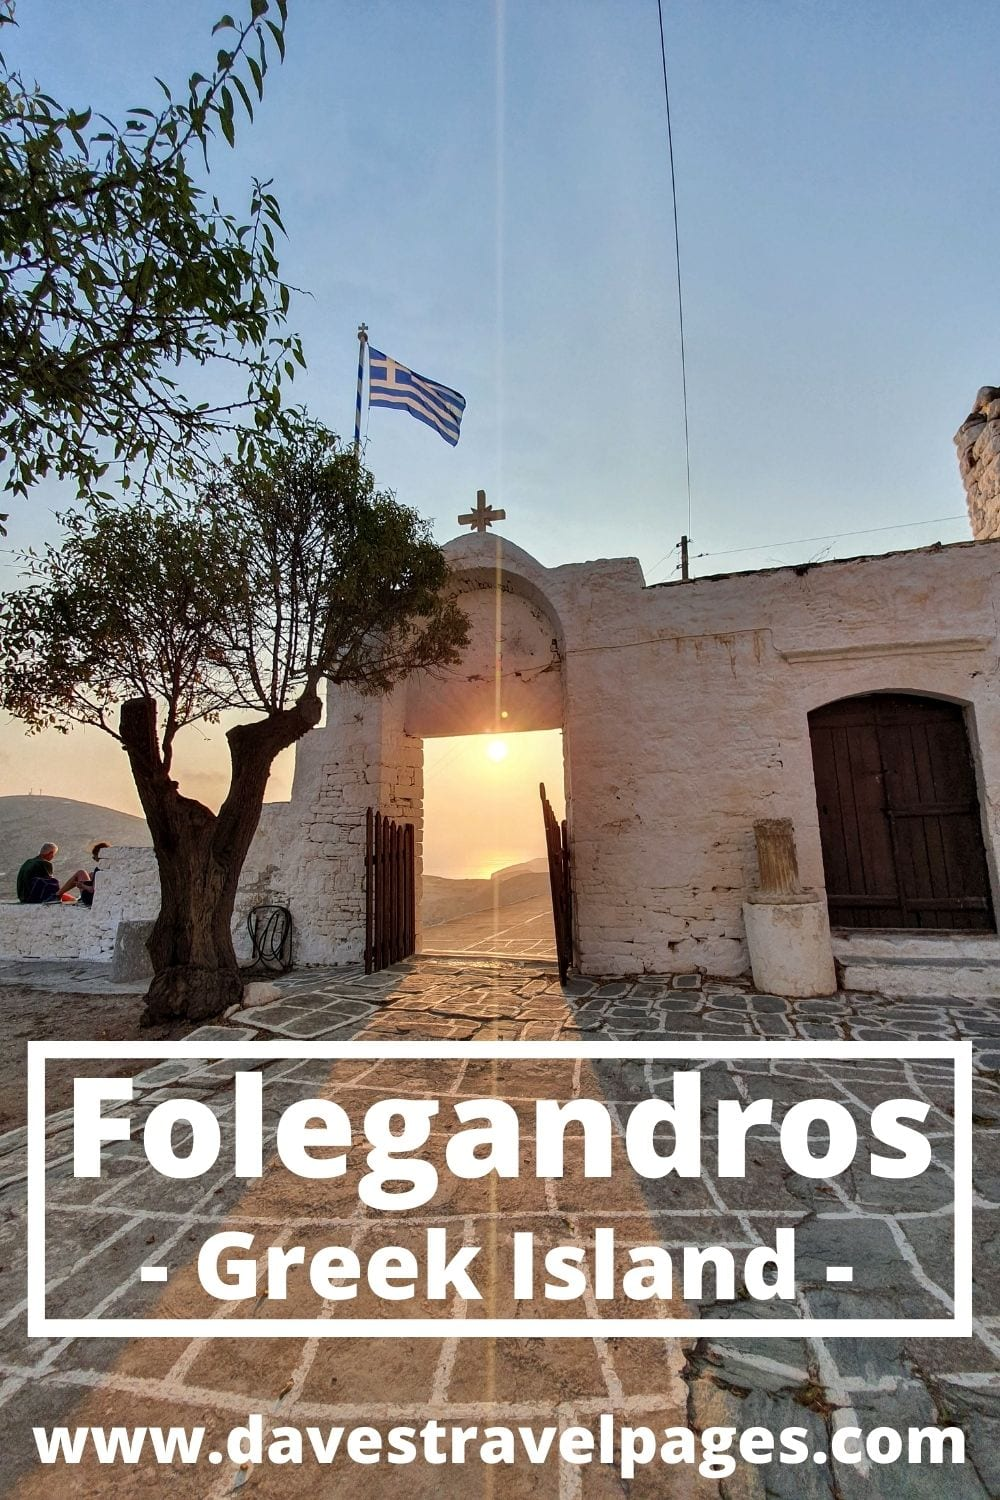 How to get from Mykonos to the Greek island Folegandros